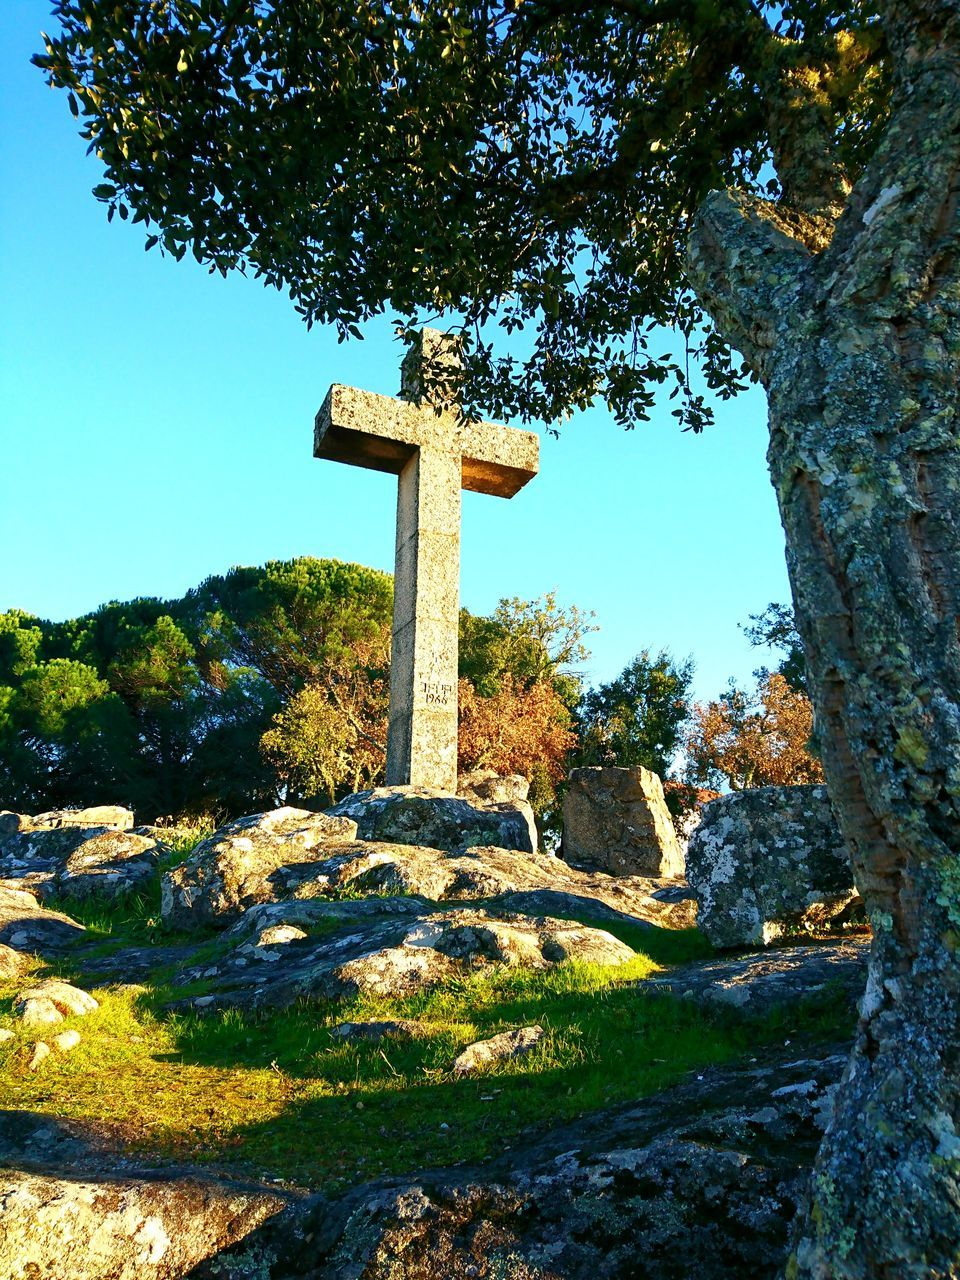 religion, cross, spirituality, stone material, green color, tree, day, low angle view, no people, statue, outdoors, sky